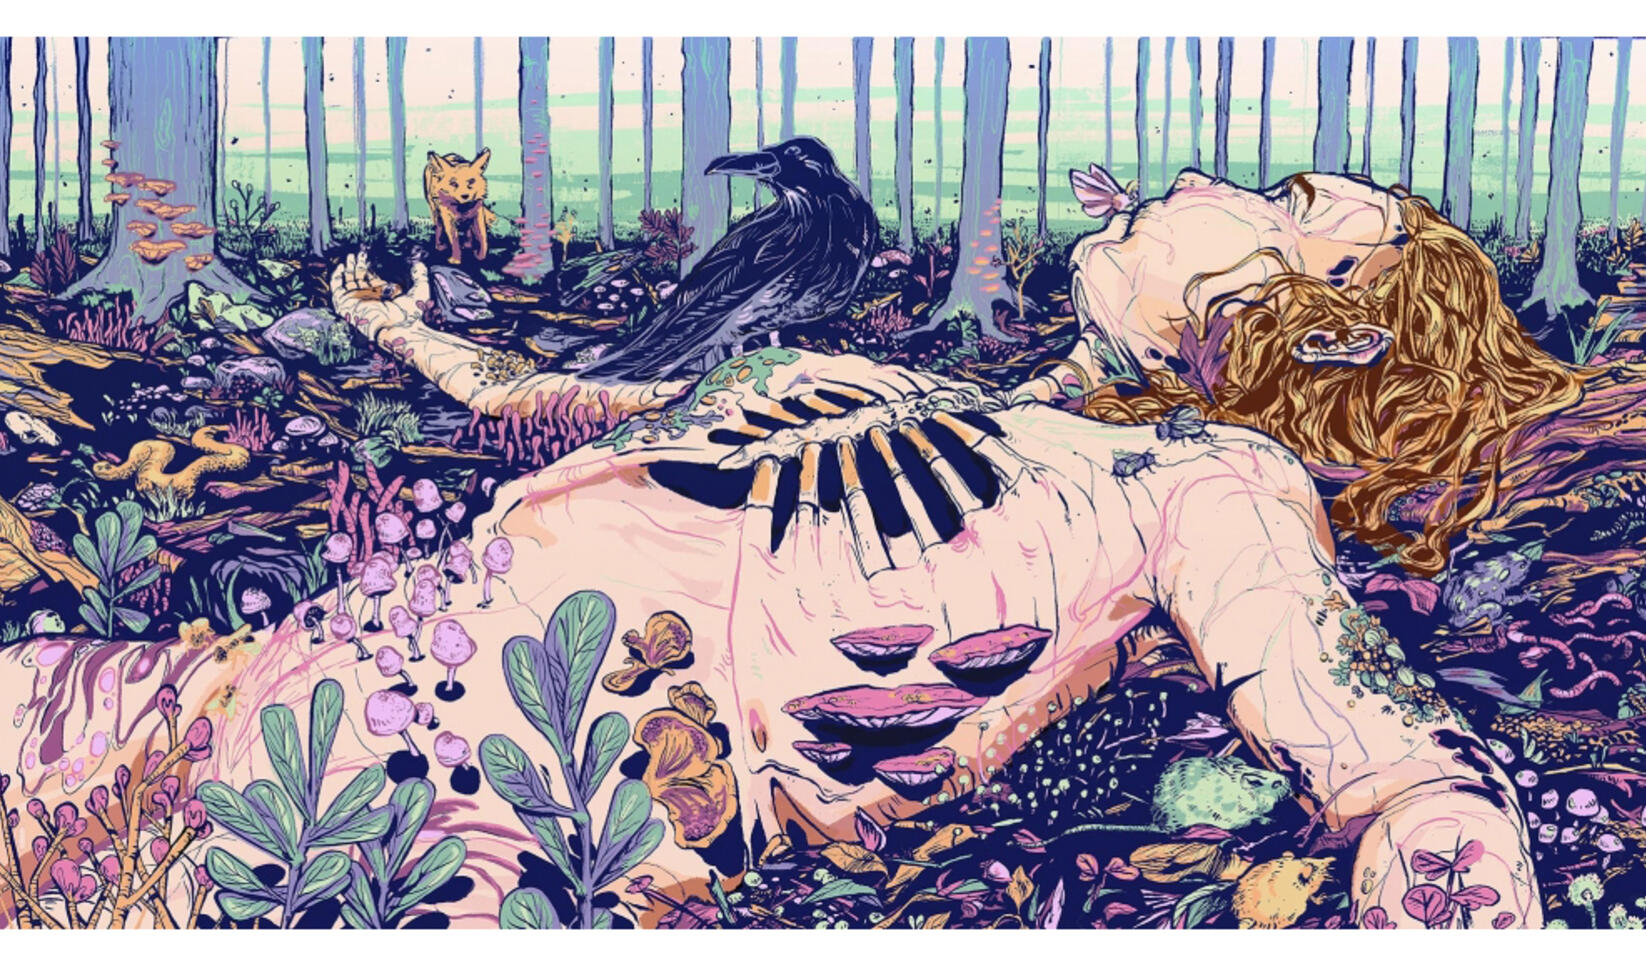 Illustration of a human body decaying and becoming the playground for nature ; Morgan Moen